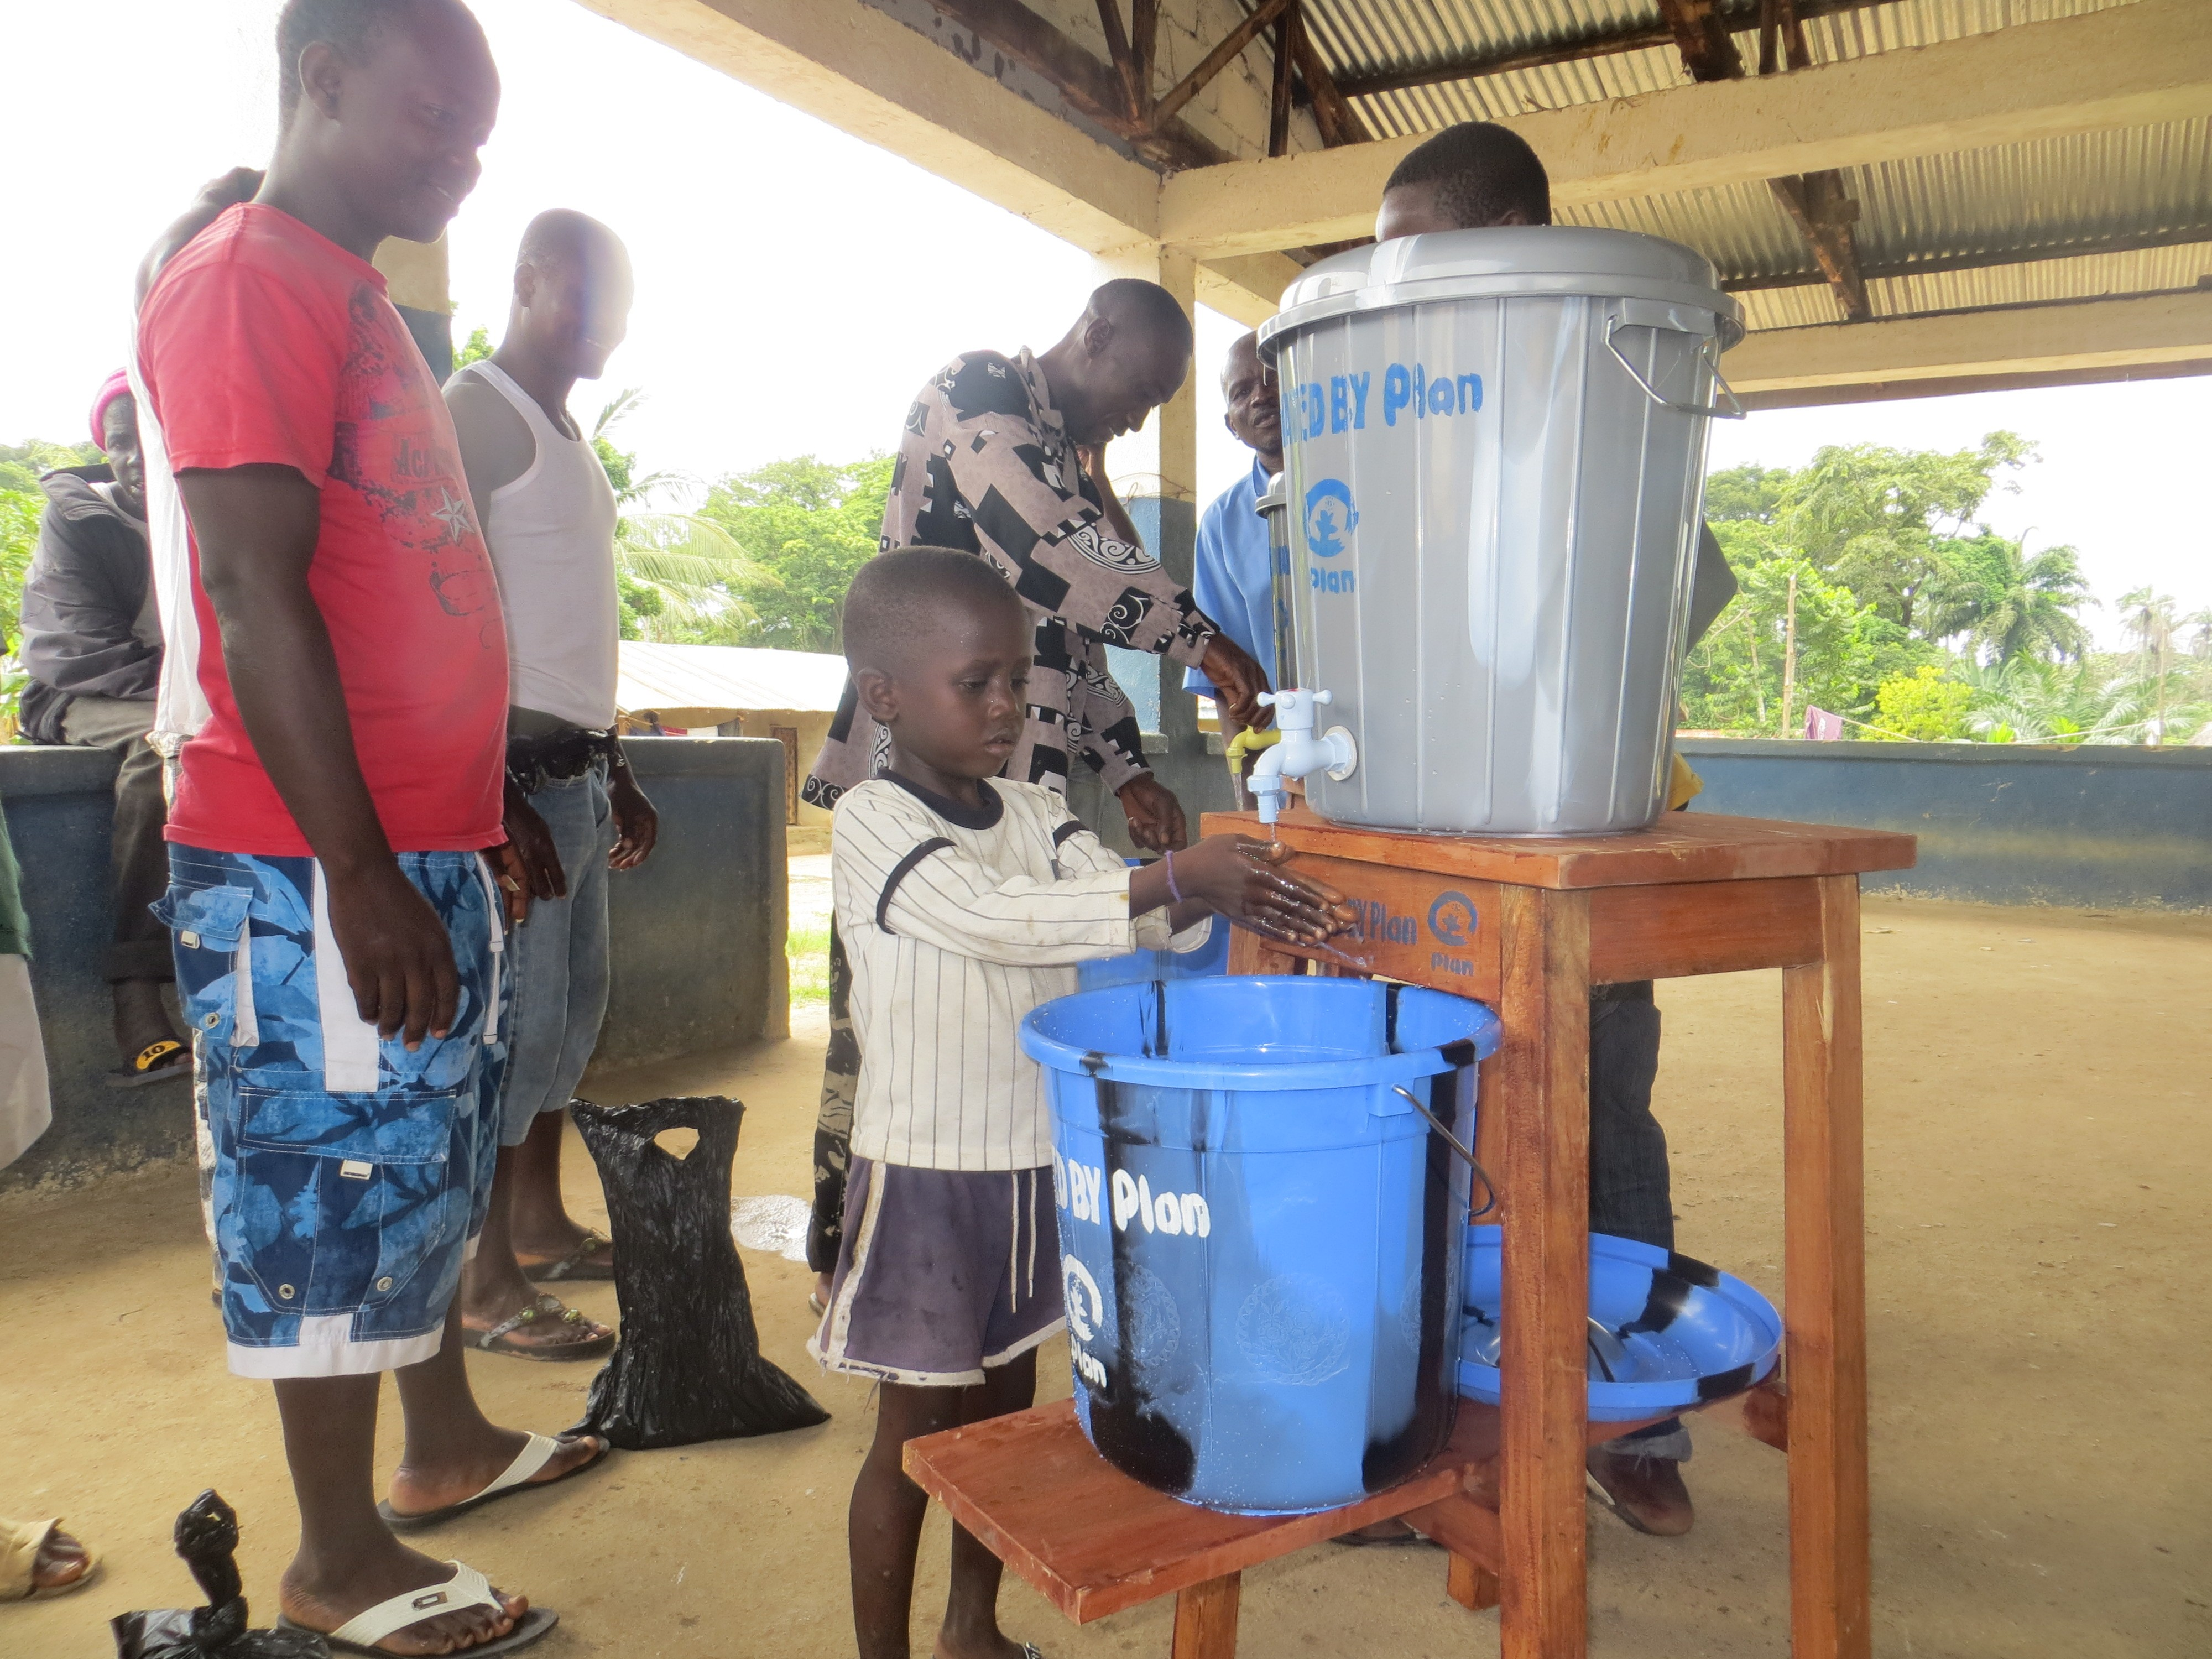 child washes hands to protect from Ebola